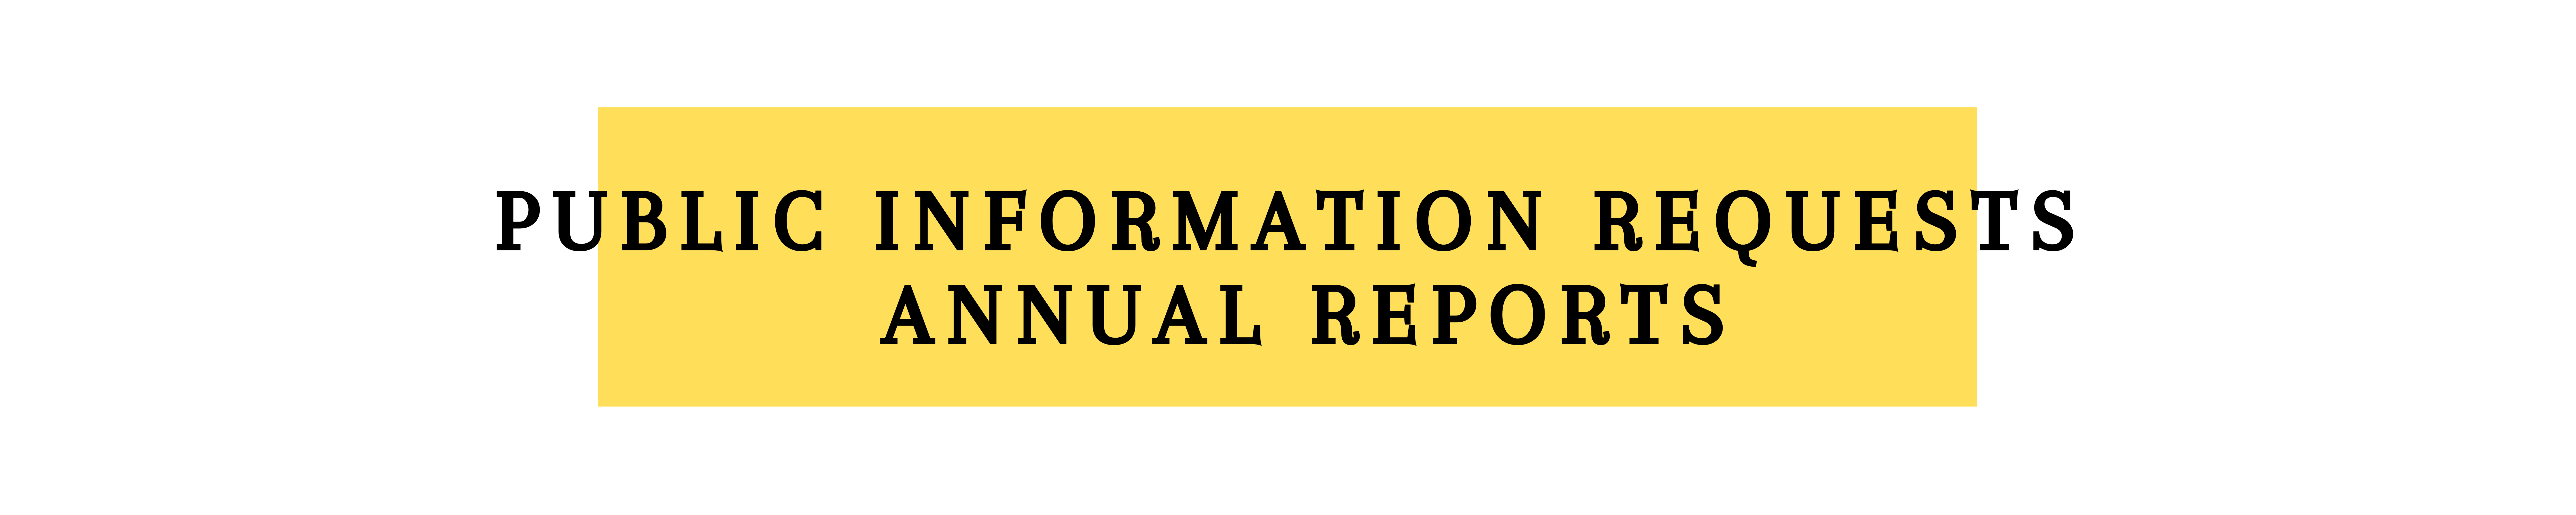 Public Information Requests Annual Reports